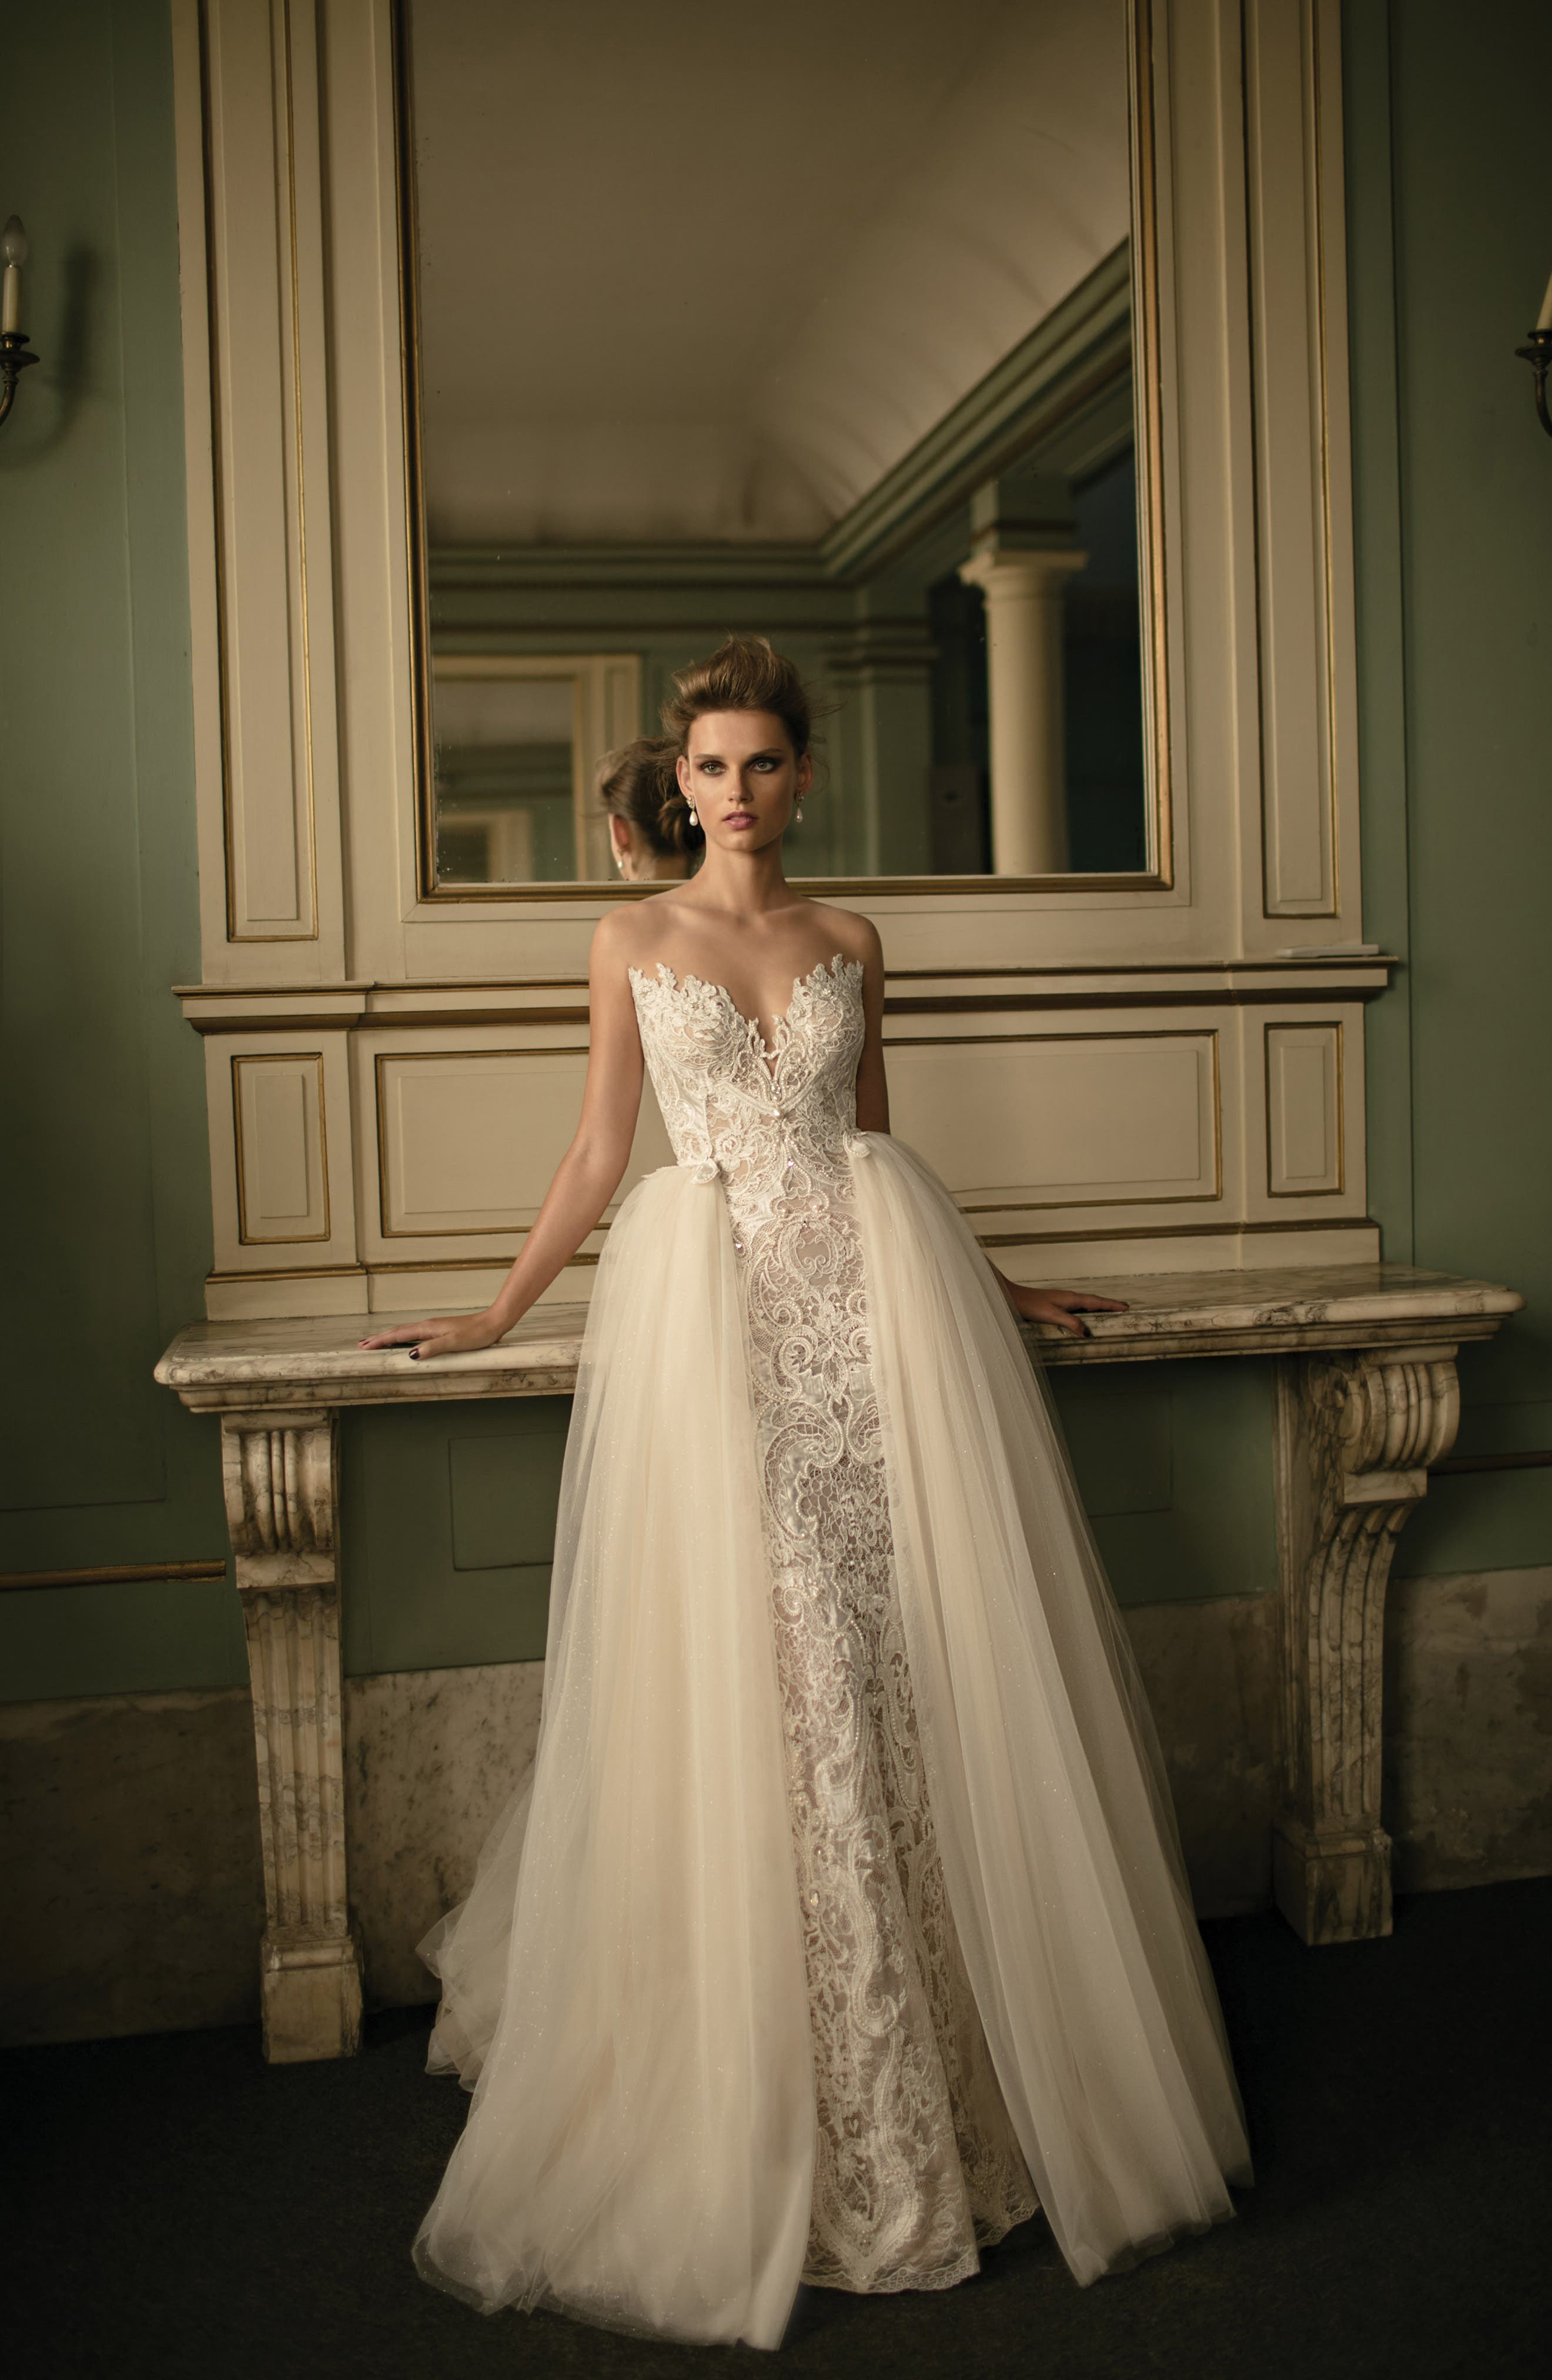 Beaded Lace & Tulle Ballgown,                             Alternate thumbnail 5, color,                             900